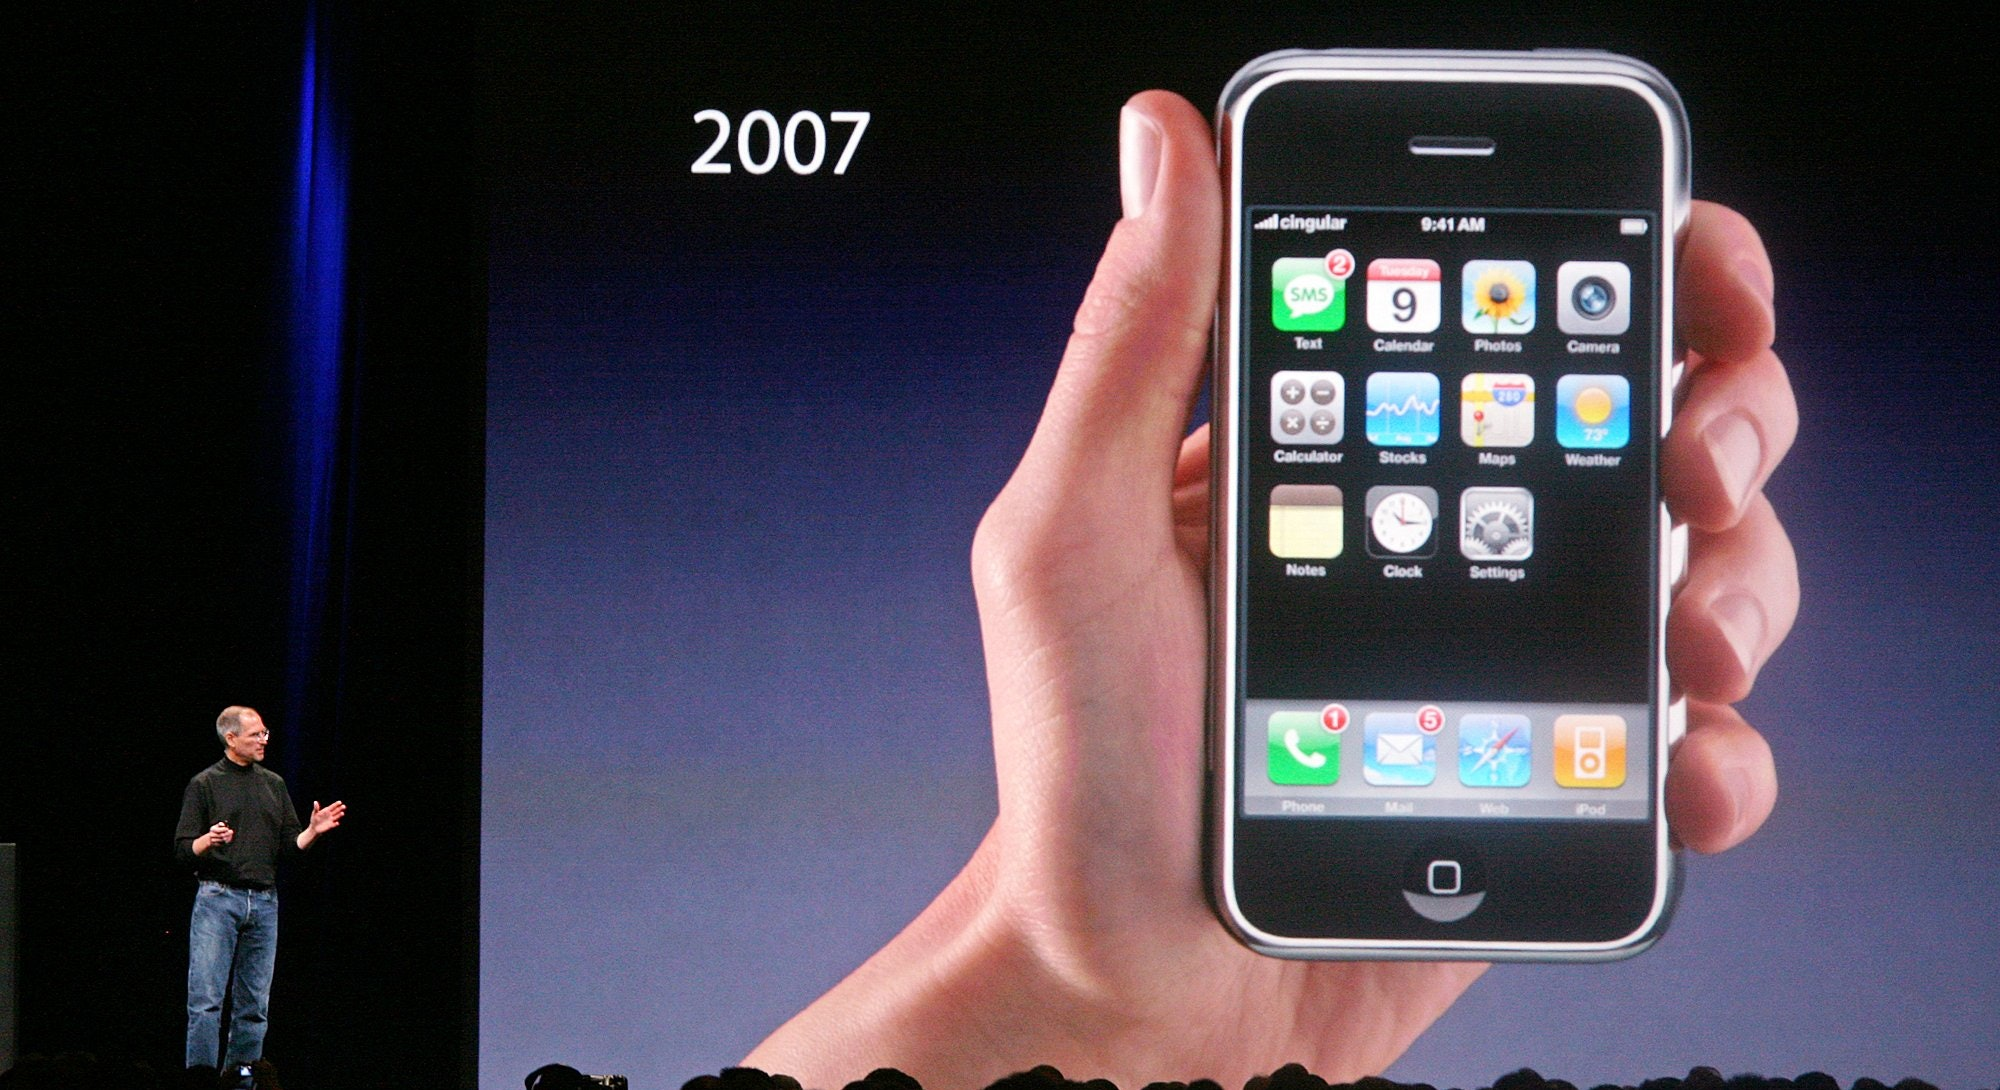 The original iPhone design from 2007.